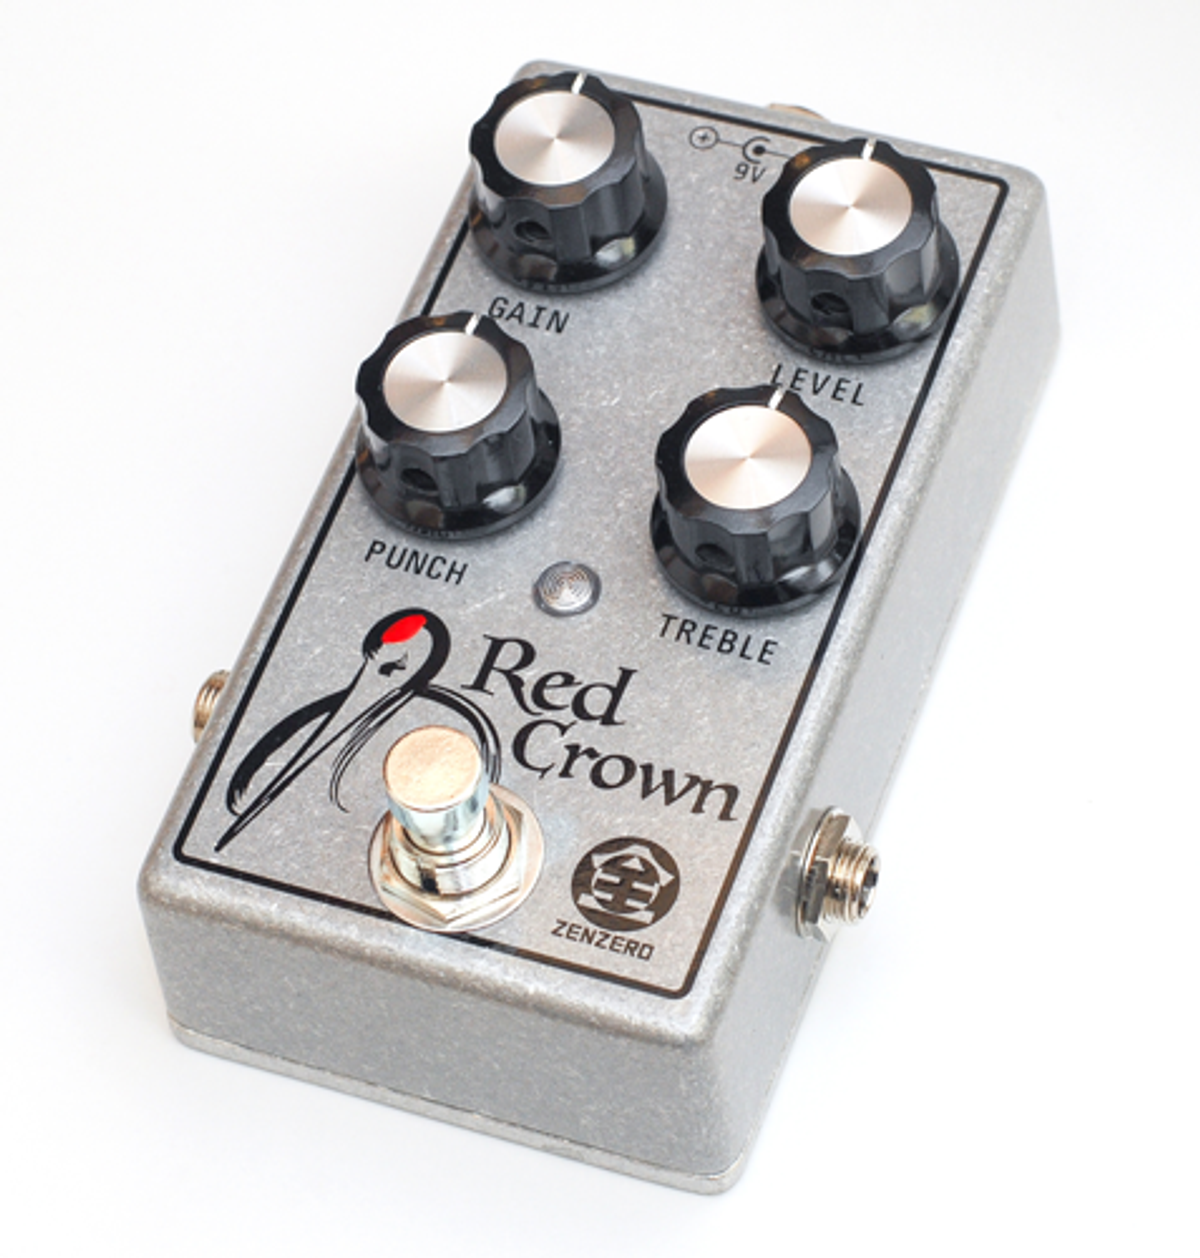 ZenZero Electronics Introduces the Red Crown Overdrive